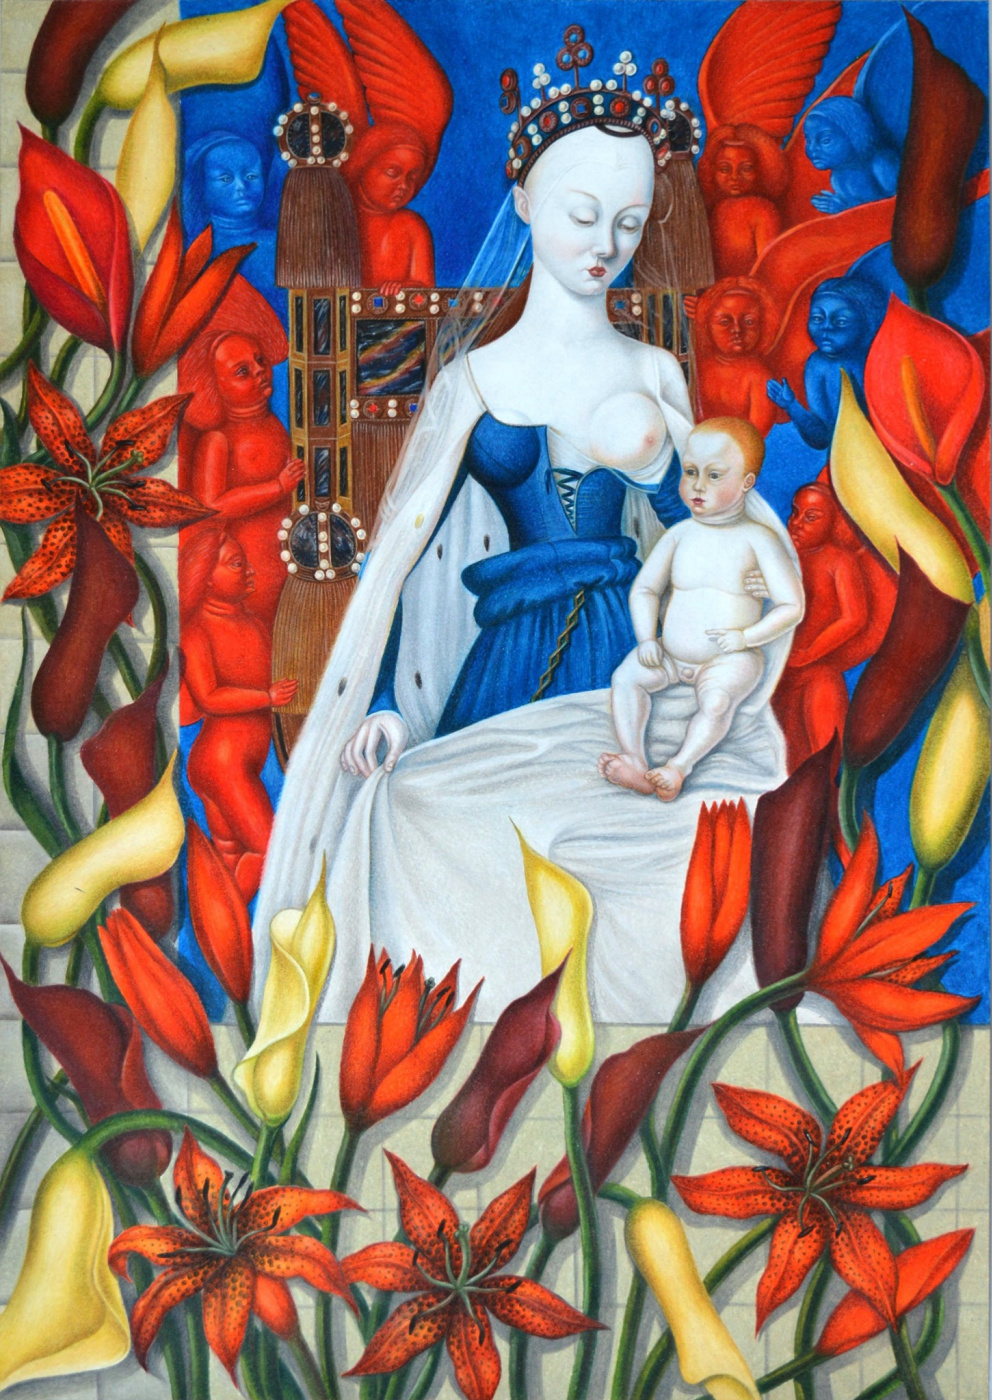 Olga Alexandrovna Fire. Based on the works of Jean Fouquet